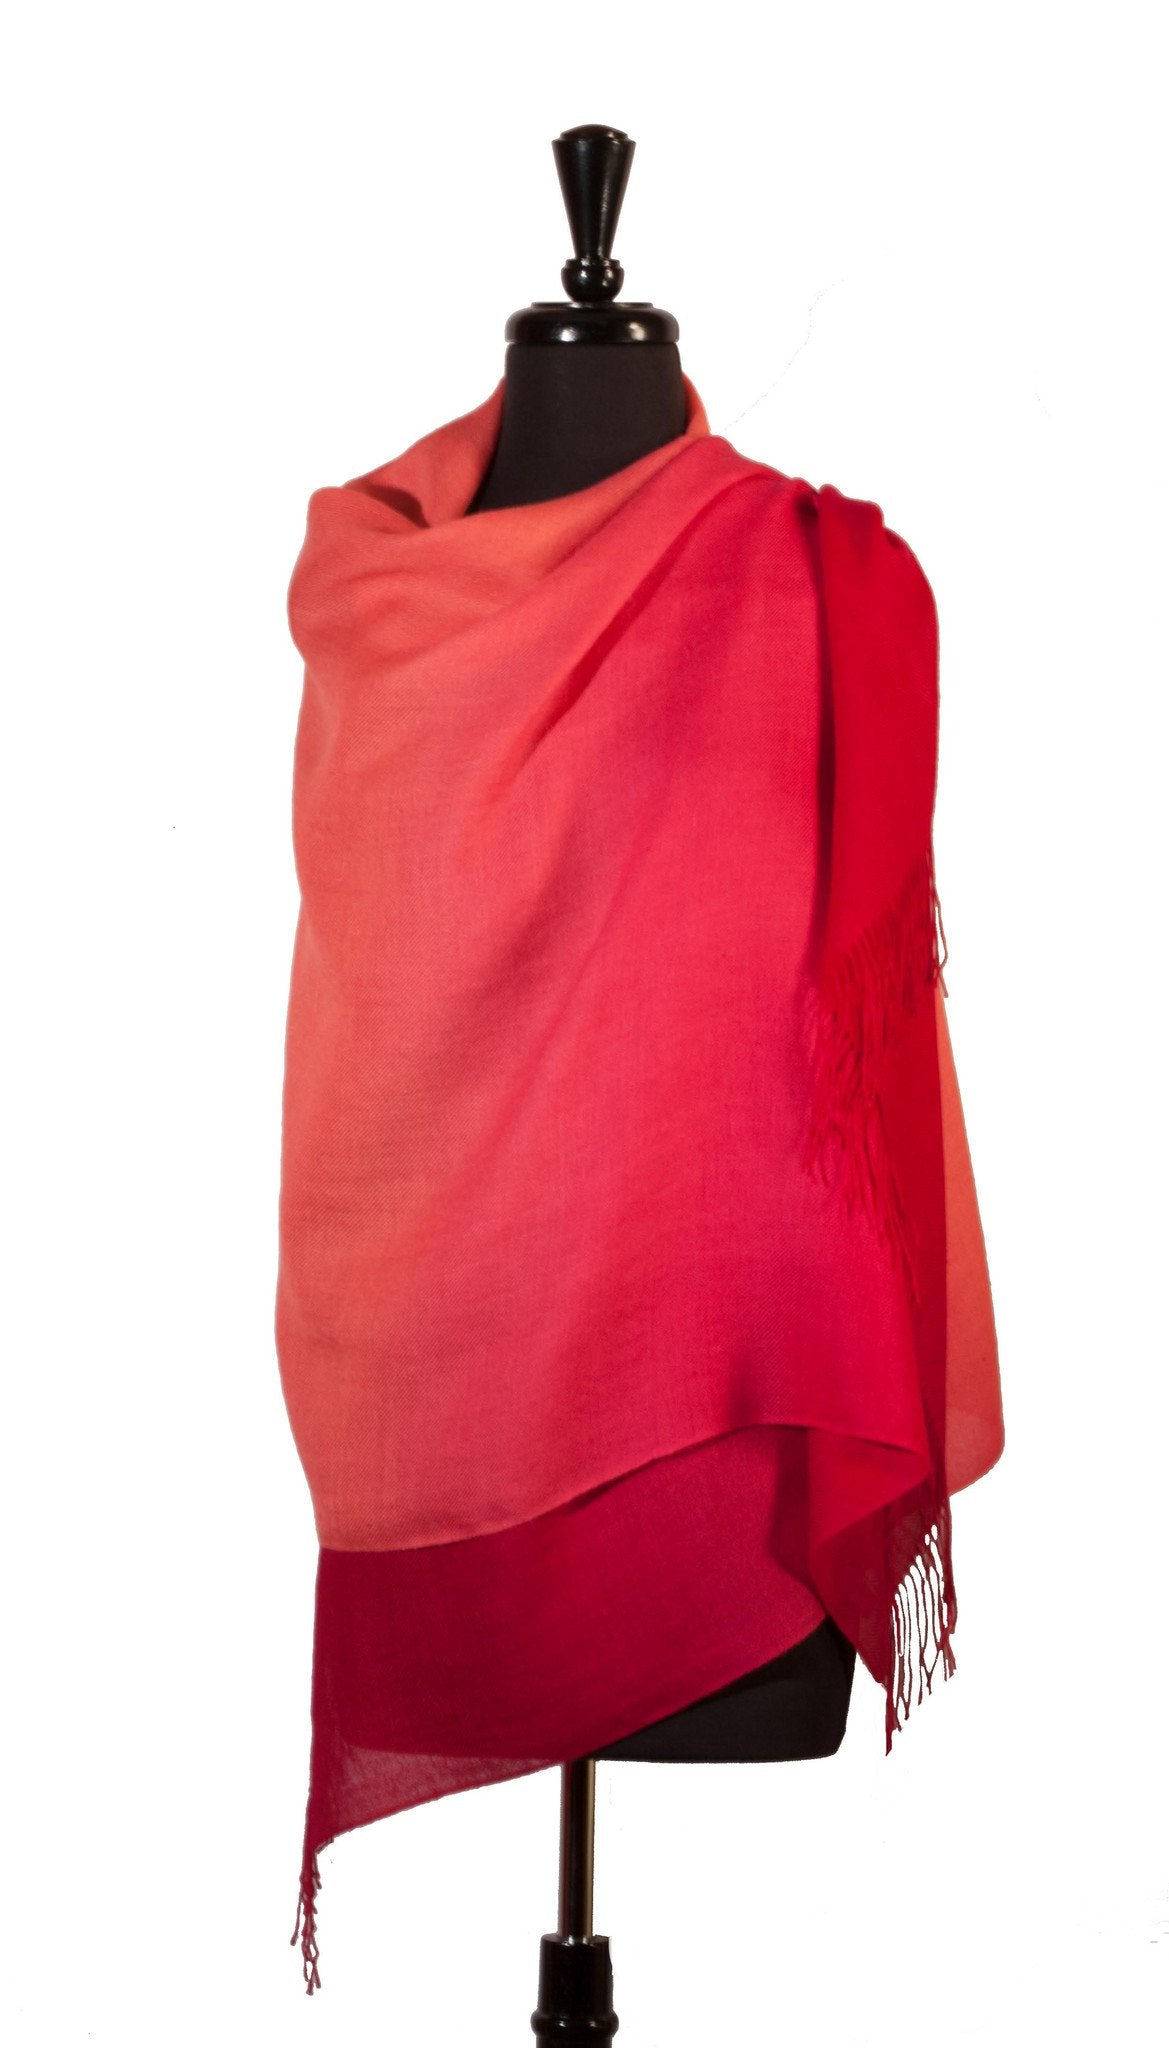 Shawl Baby Alpaca & Silk in Two-Tone Degrade - Coral - Qinti - The Peruvian Shop